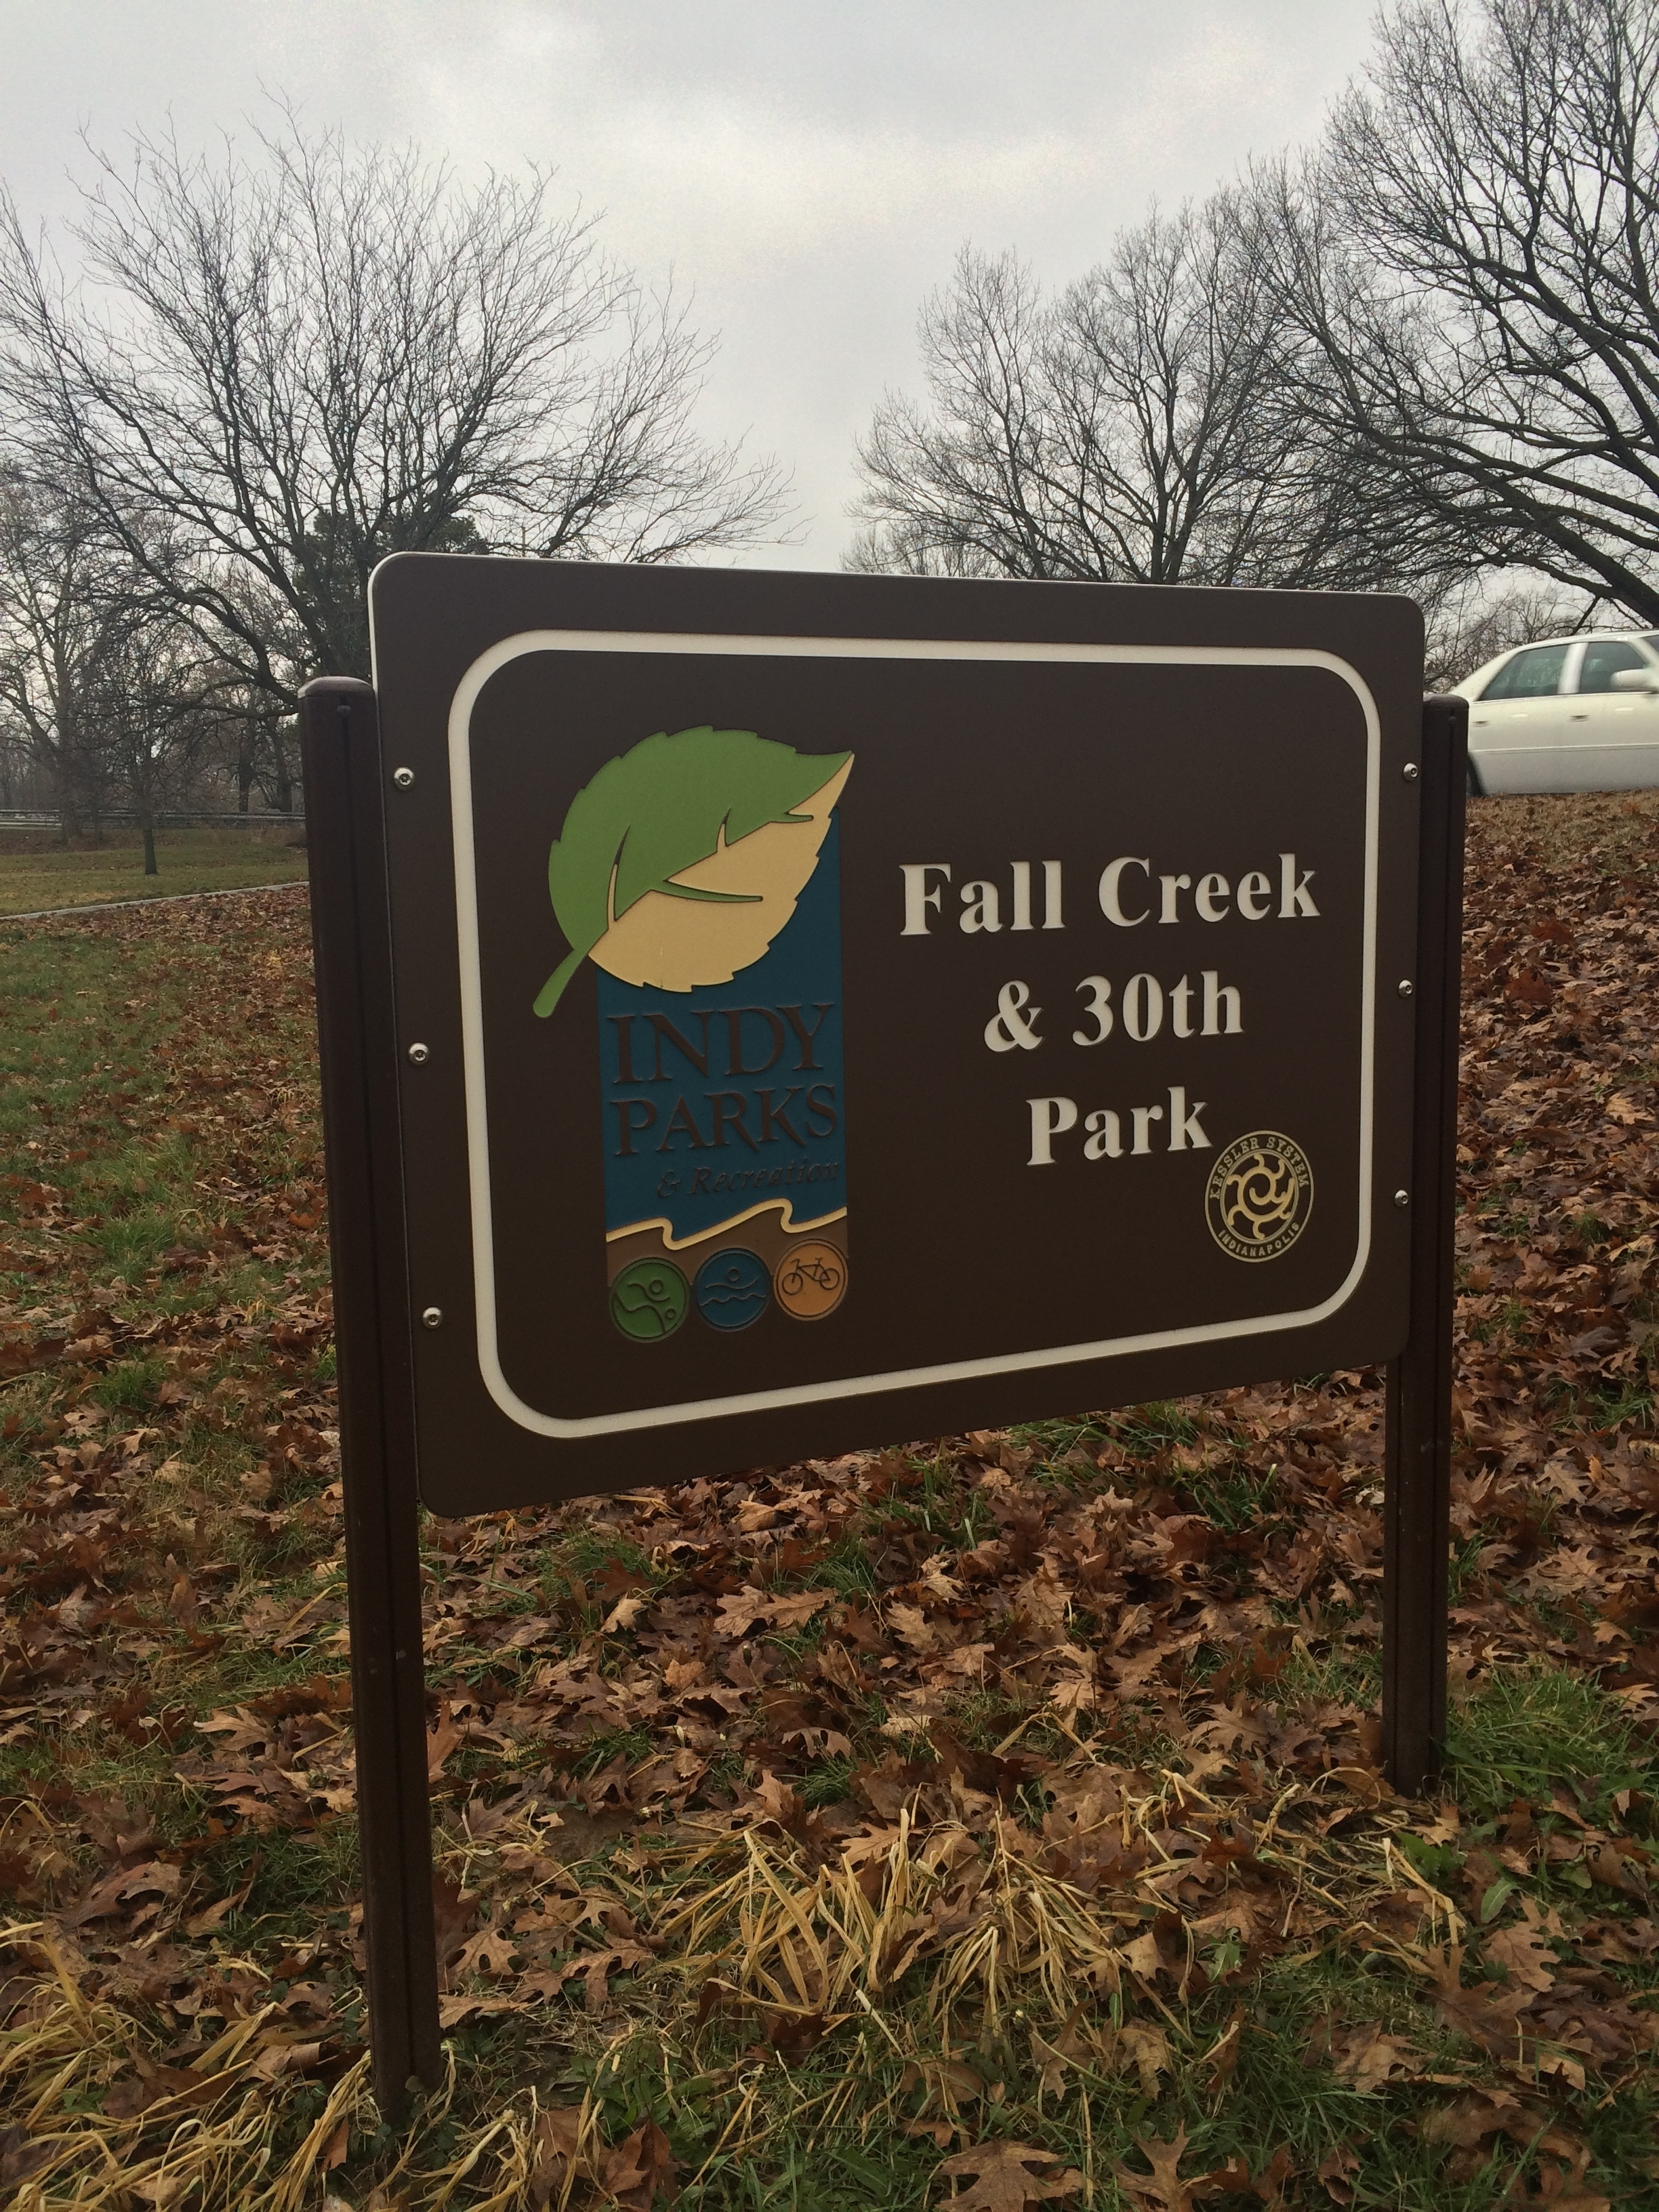 In the Park: Fall Creek & 30th Park